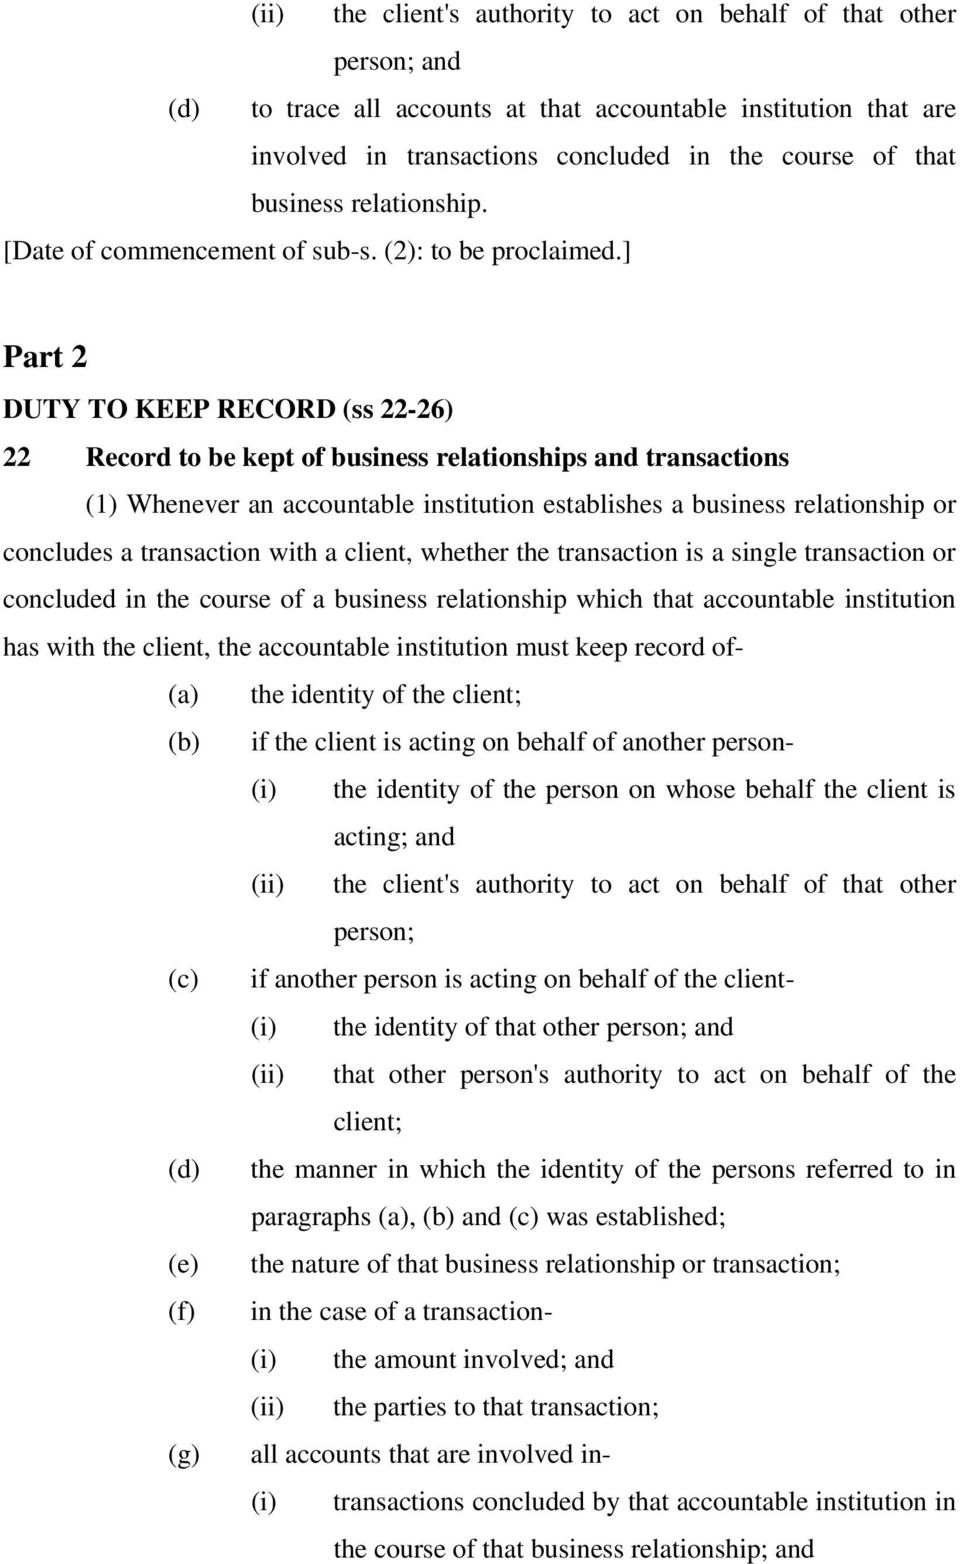 ] Part 2 DUTY TO KEEP RECORD (ss 22-26) 22 Record to be kept of business relationships and transactions (1) Whenever an accountable institution establishes a business relationship or concludes a